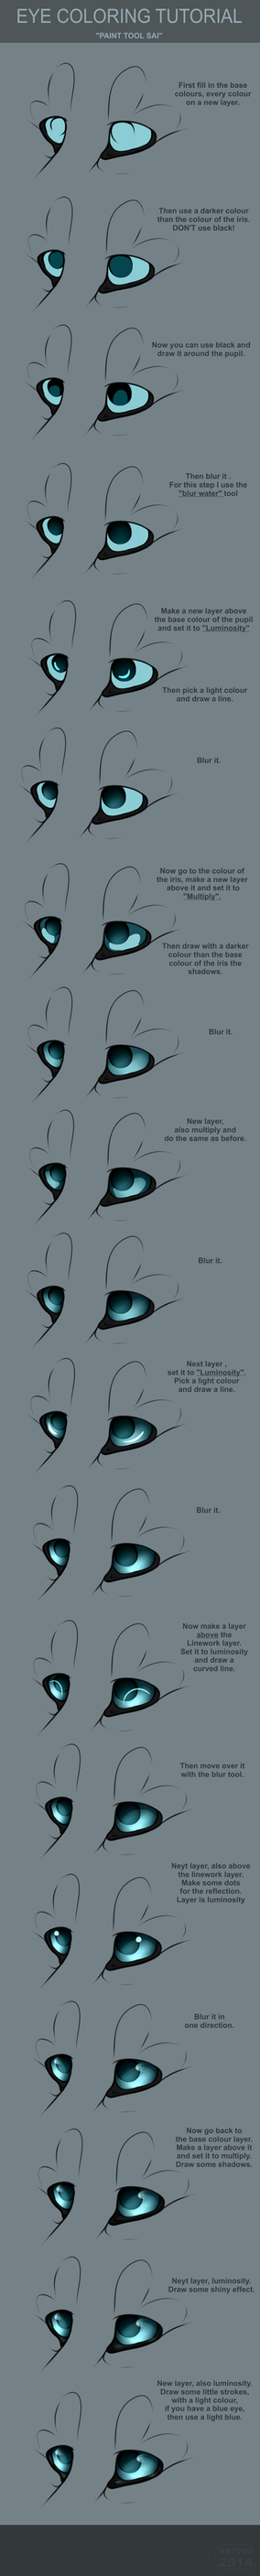 Eye Coloring Tutorial by Satoga